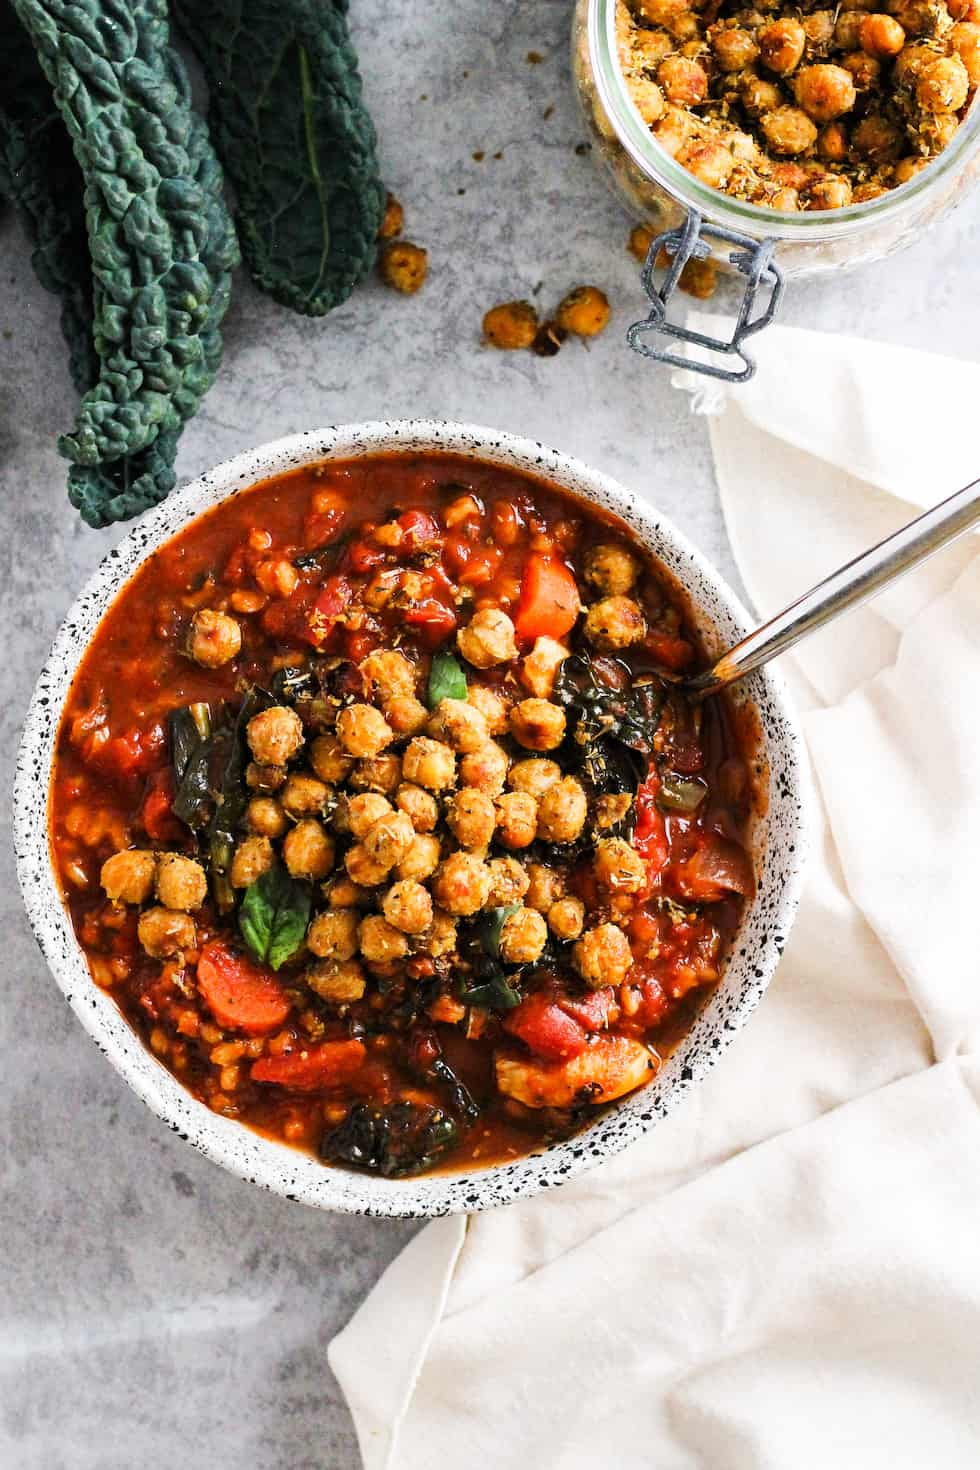 Tomato barley soup in white stone bowl with cream napkin and kale and chickpeas.